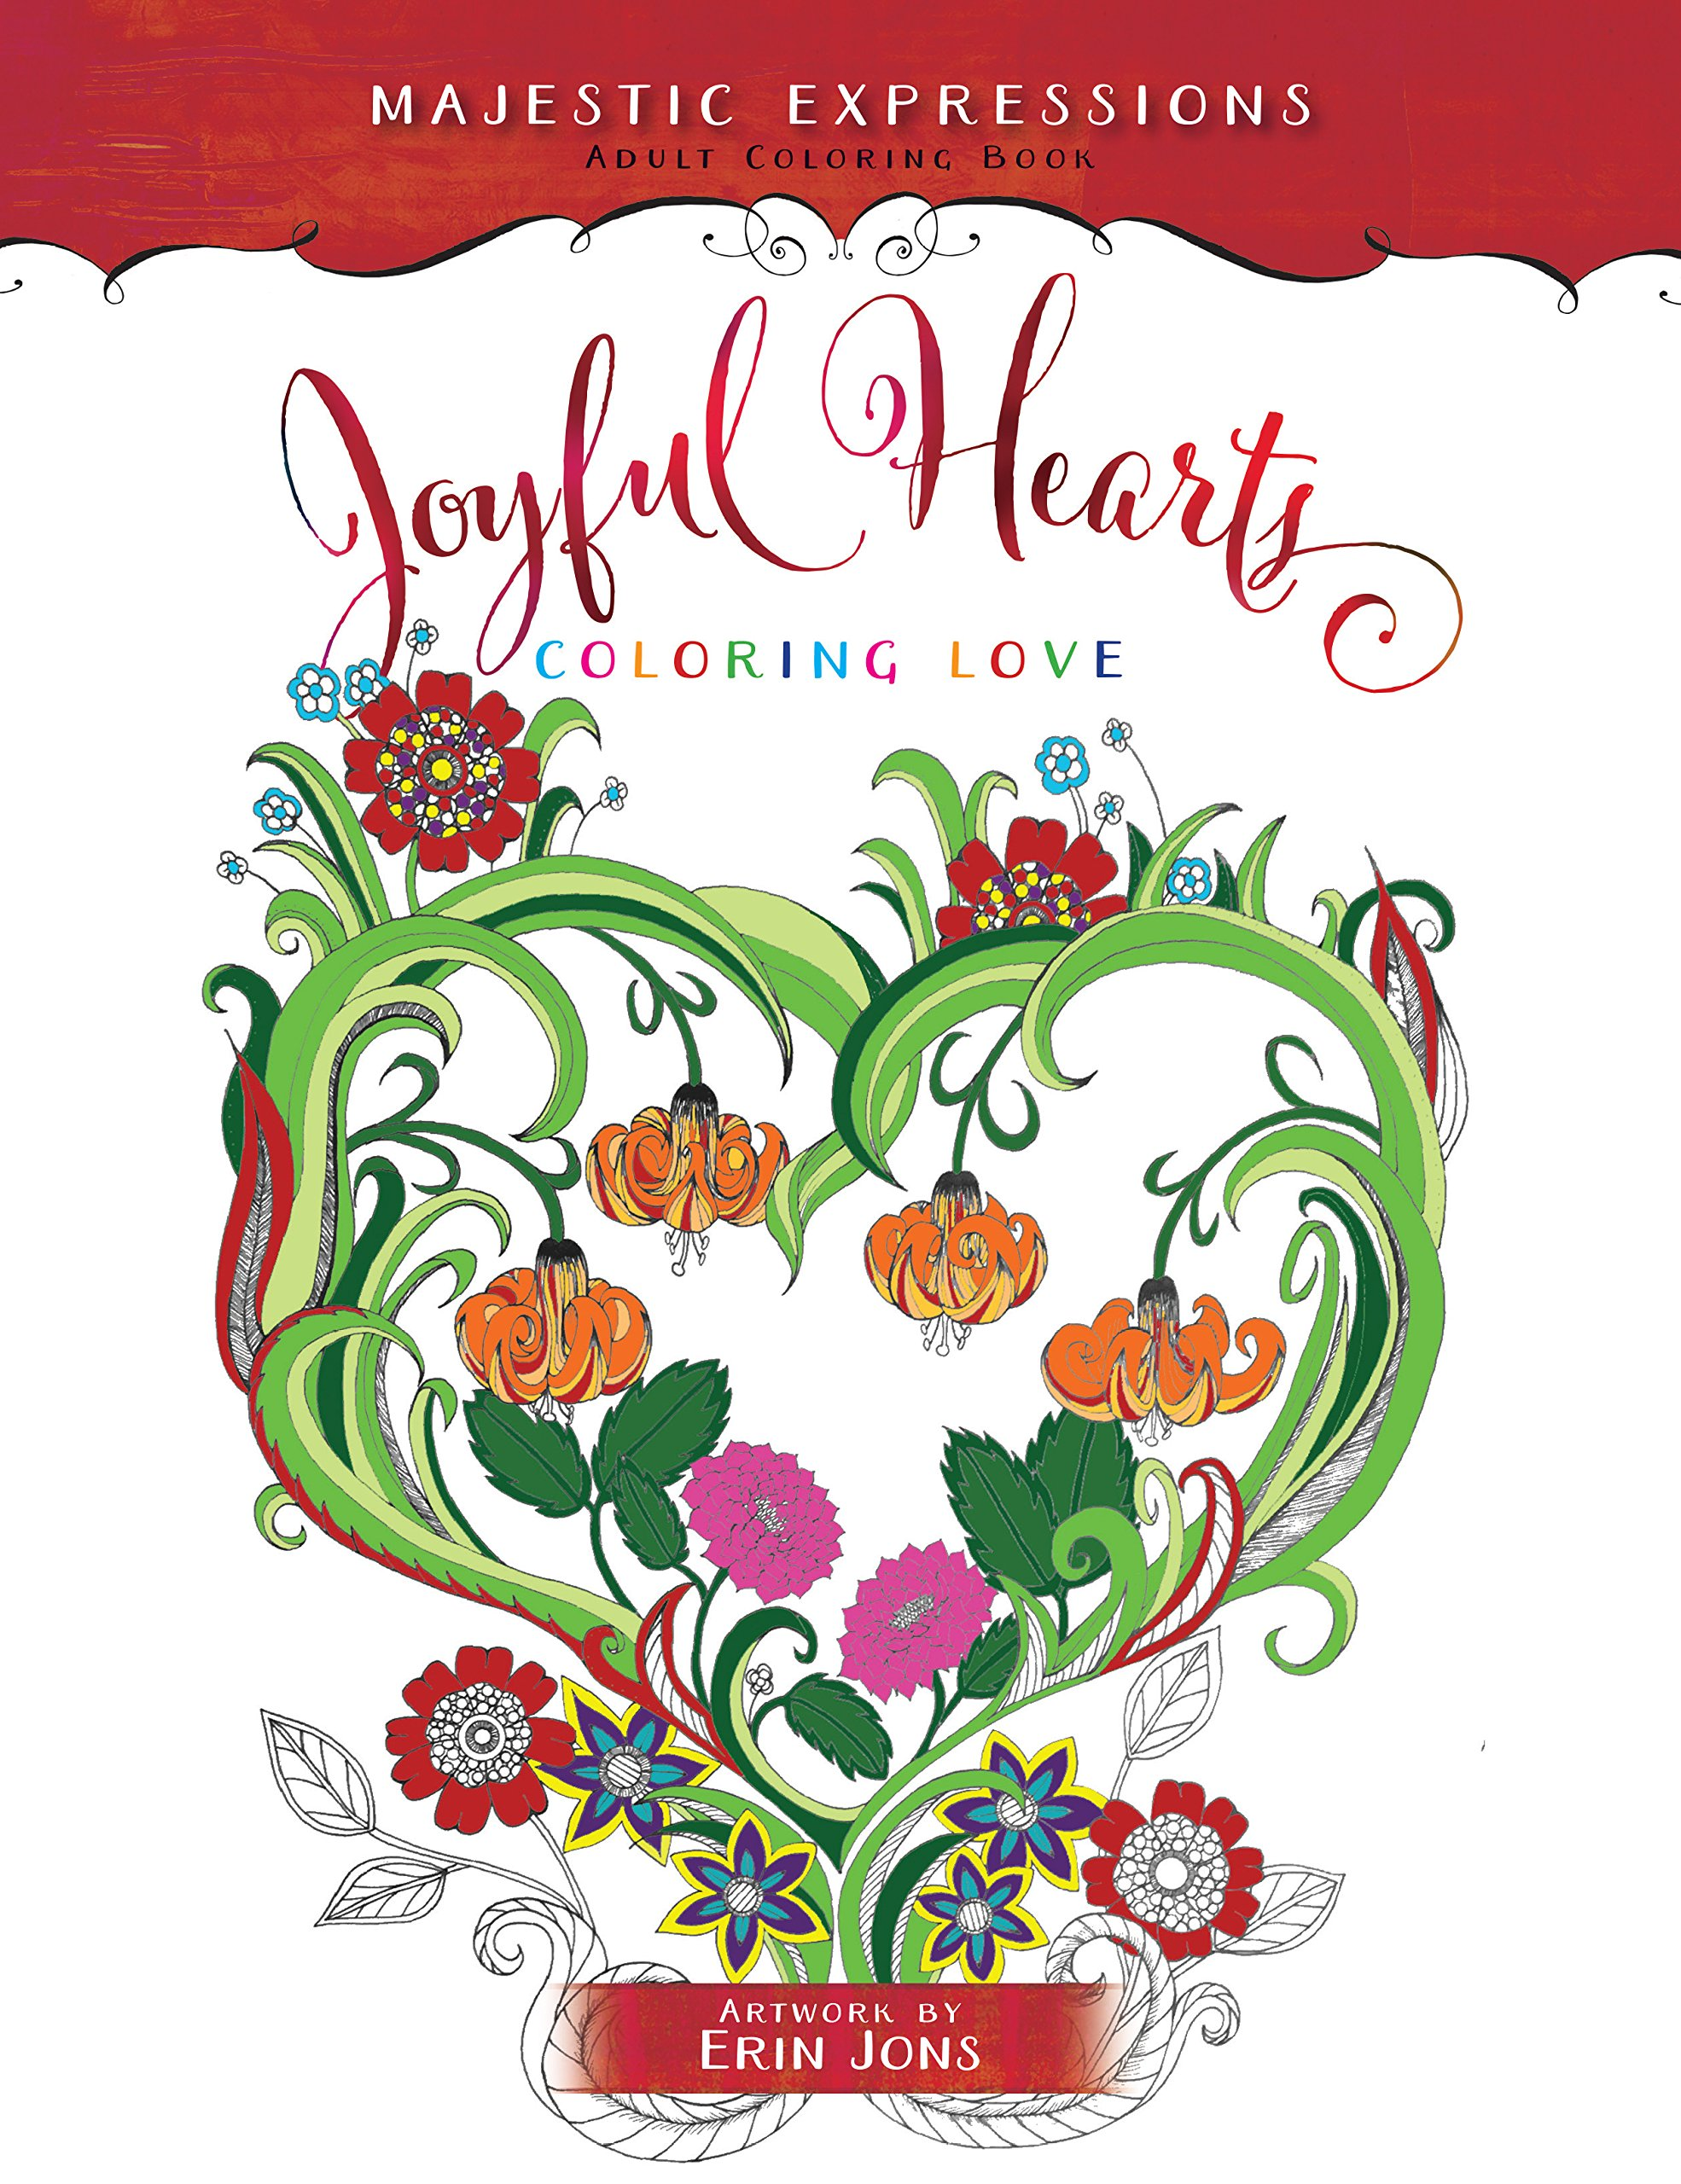 joyful-hearts-coloring-love-majestic-expressions